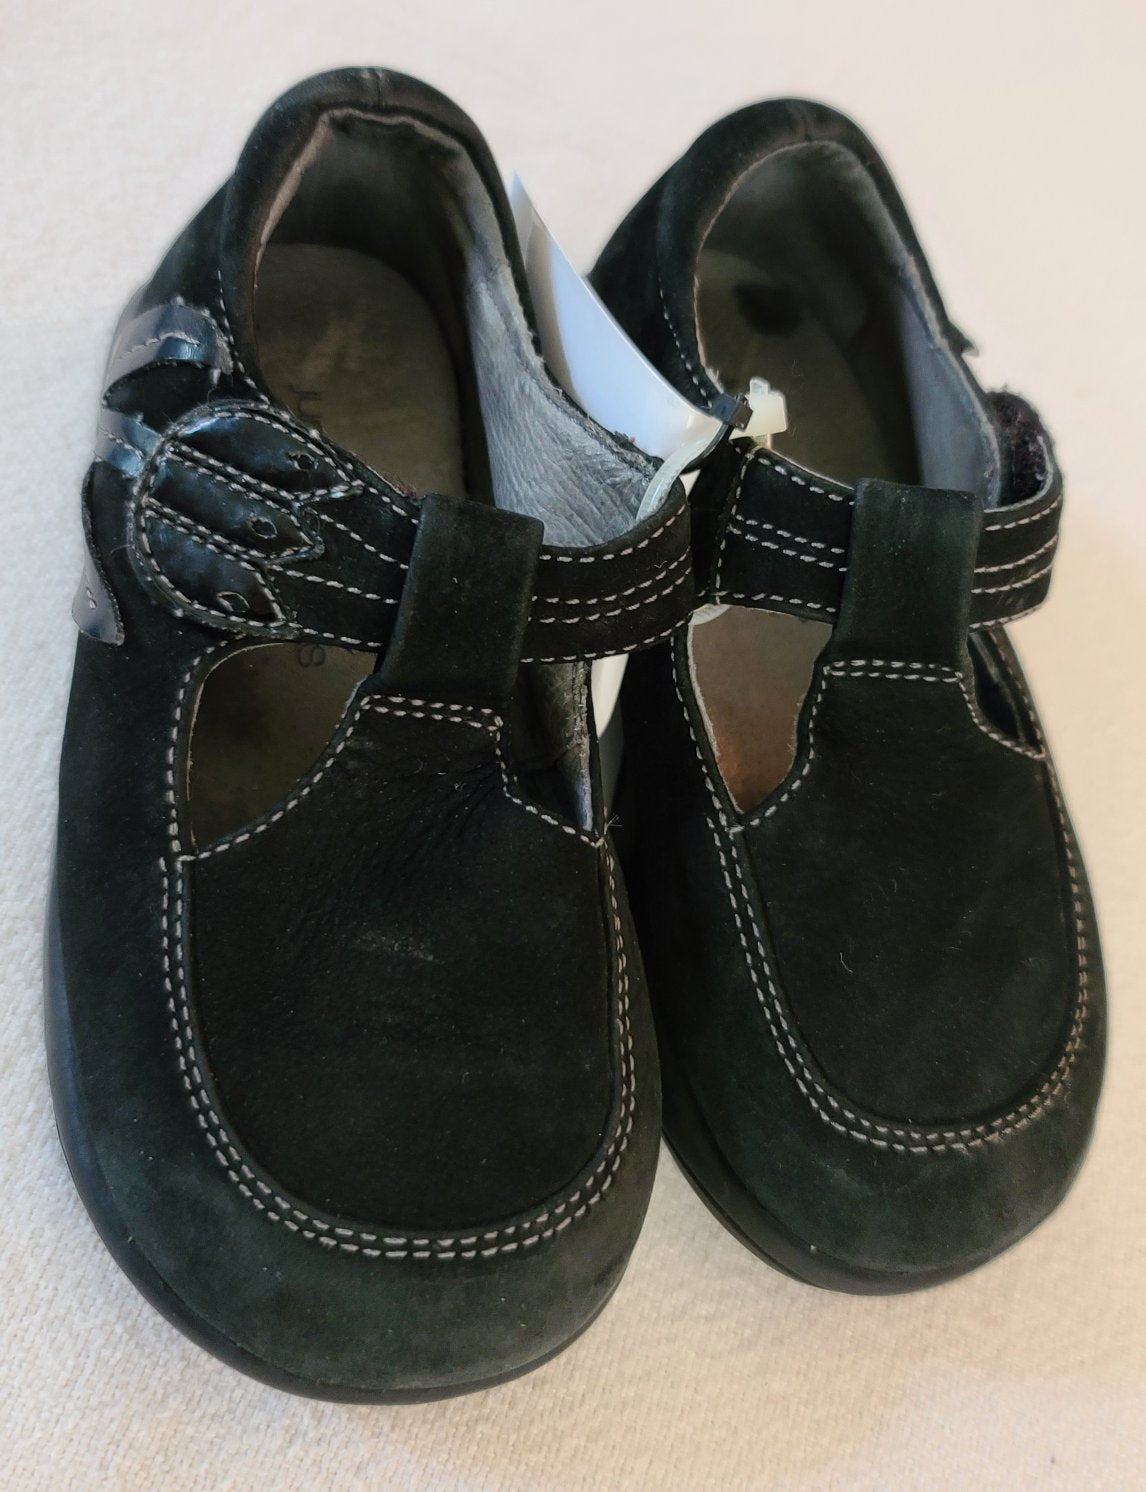 JUMPING JACKS Suede Dress shoes, Toddler girls size 6